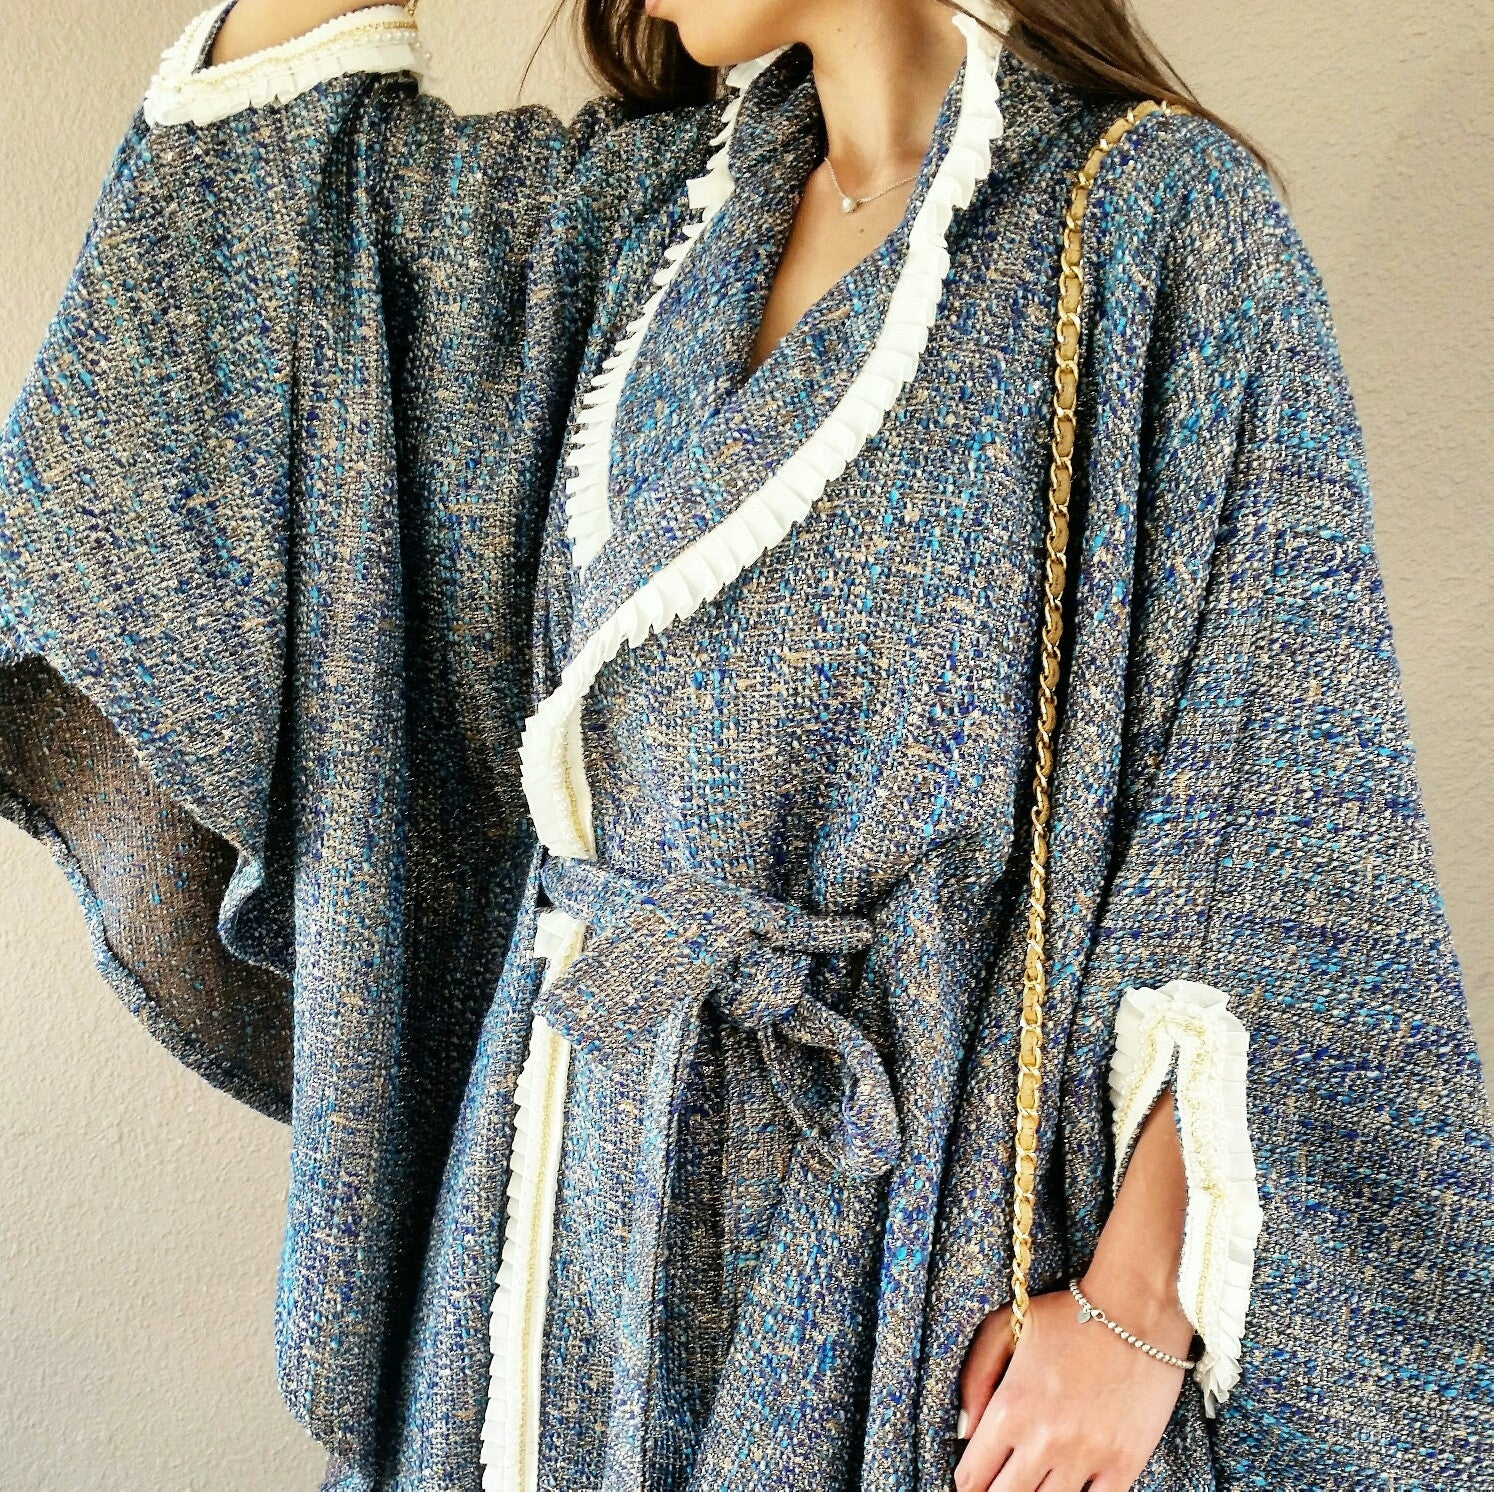 Textured Boucle Wool Cape in Shades of Blue